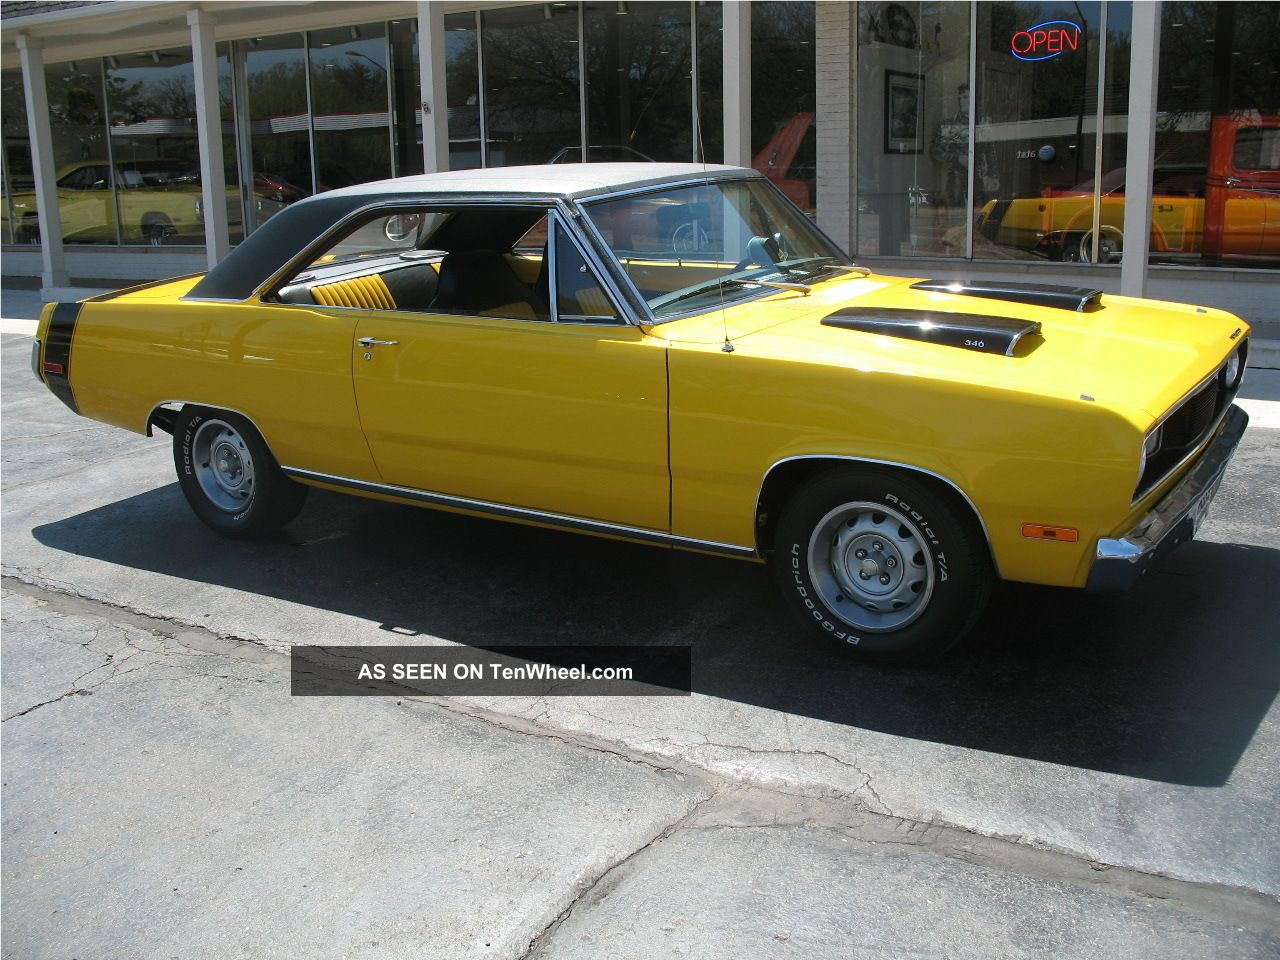 1972 Plymouth Scamp Performance Yellow 340 4 Speed Disc Brakes Recent Resto Duster photo